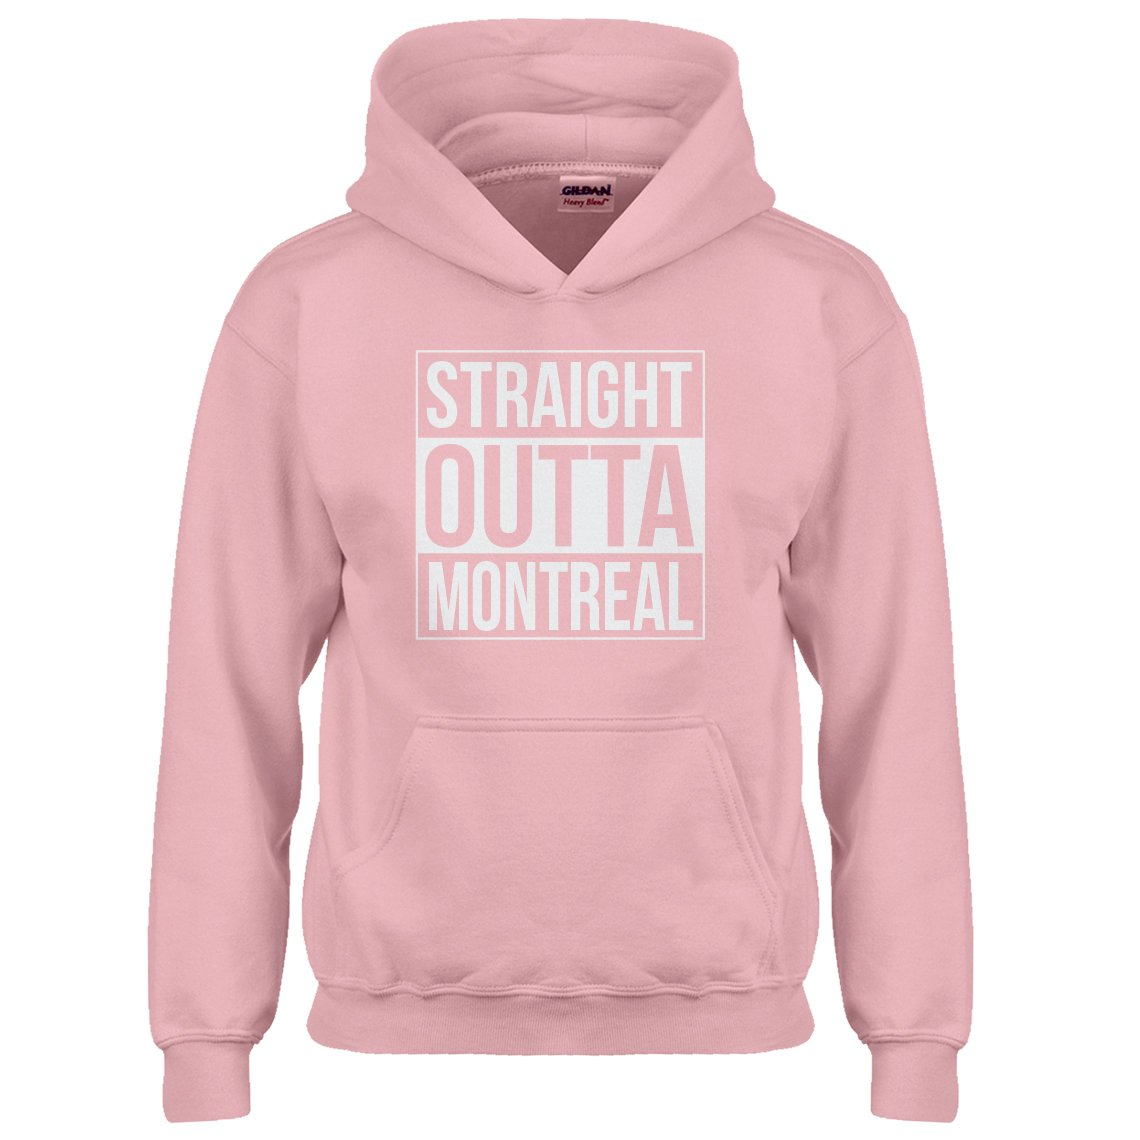 Indica Plateau Straight Outta Montreal Hoodie for Kids